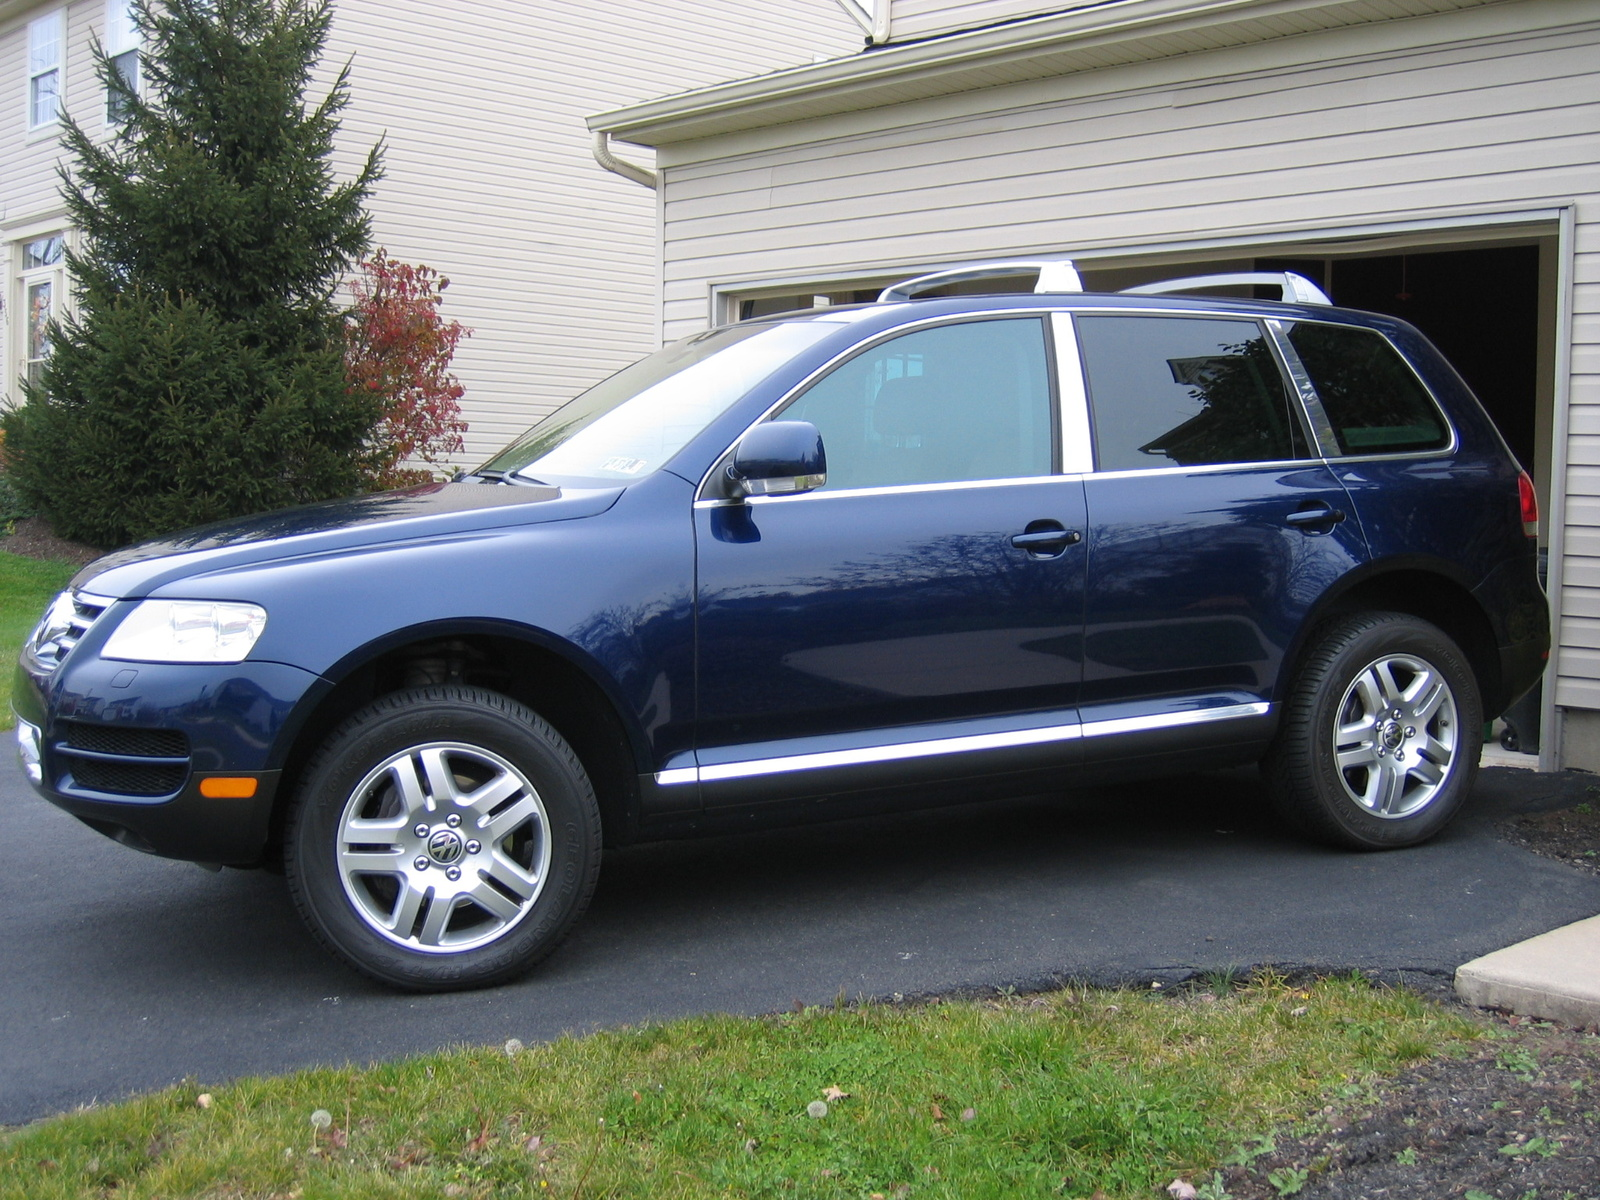 2004 volkswagen touareg information and photos zombiedrive. Black Bedroom Furniture Sets. Home Design Ideas